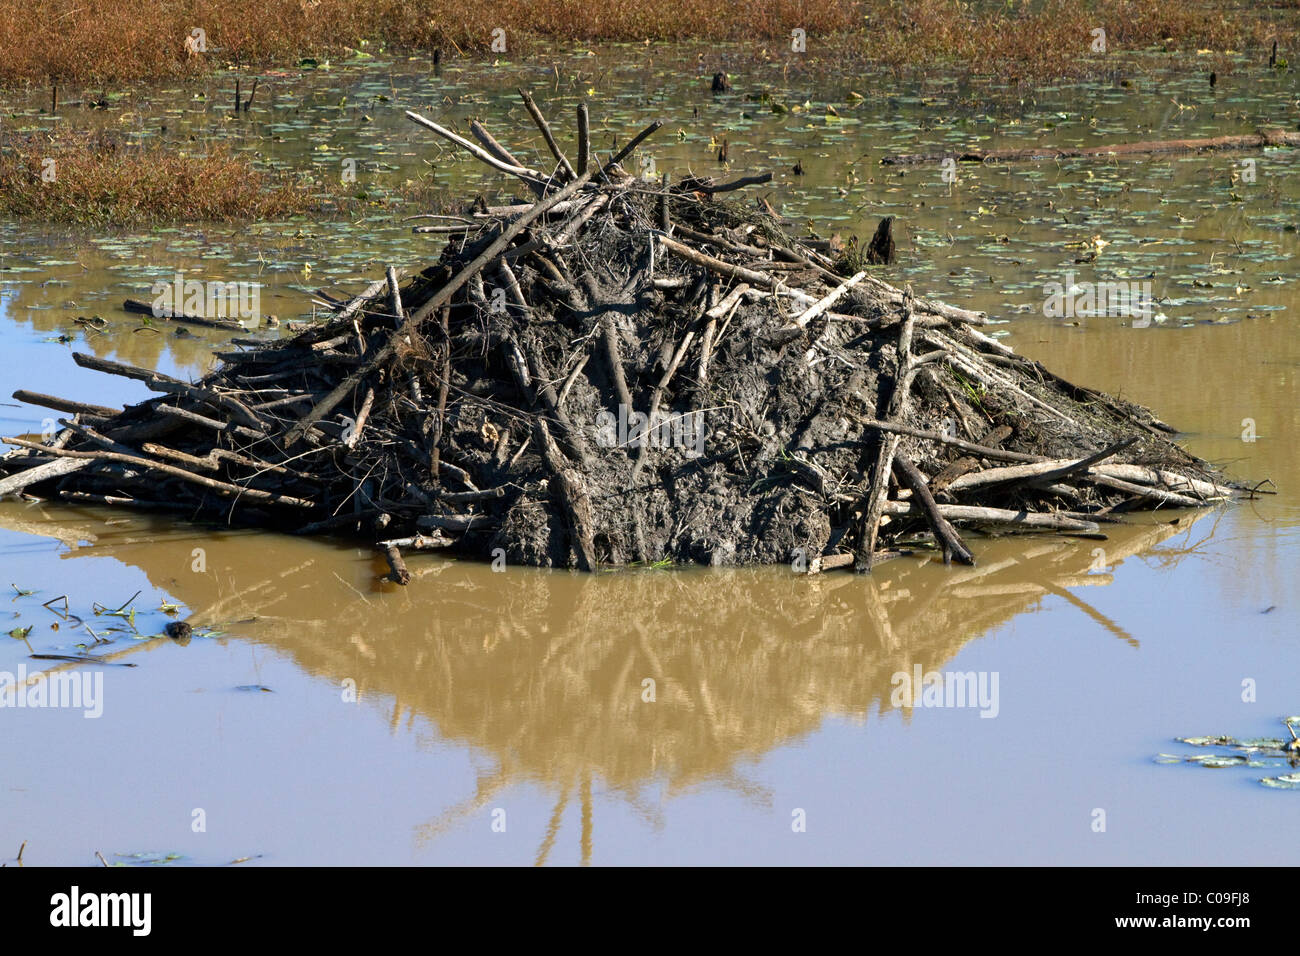 Beaver lodge in a swamp along the Tombigbee River north of Tupelo Mississippi, USA. - Stock Image